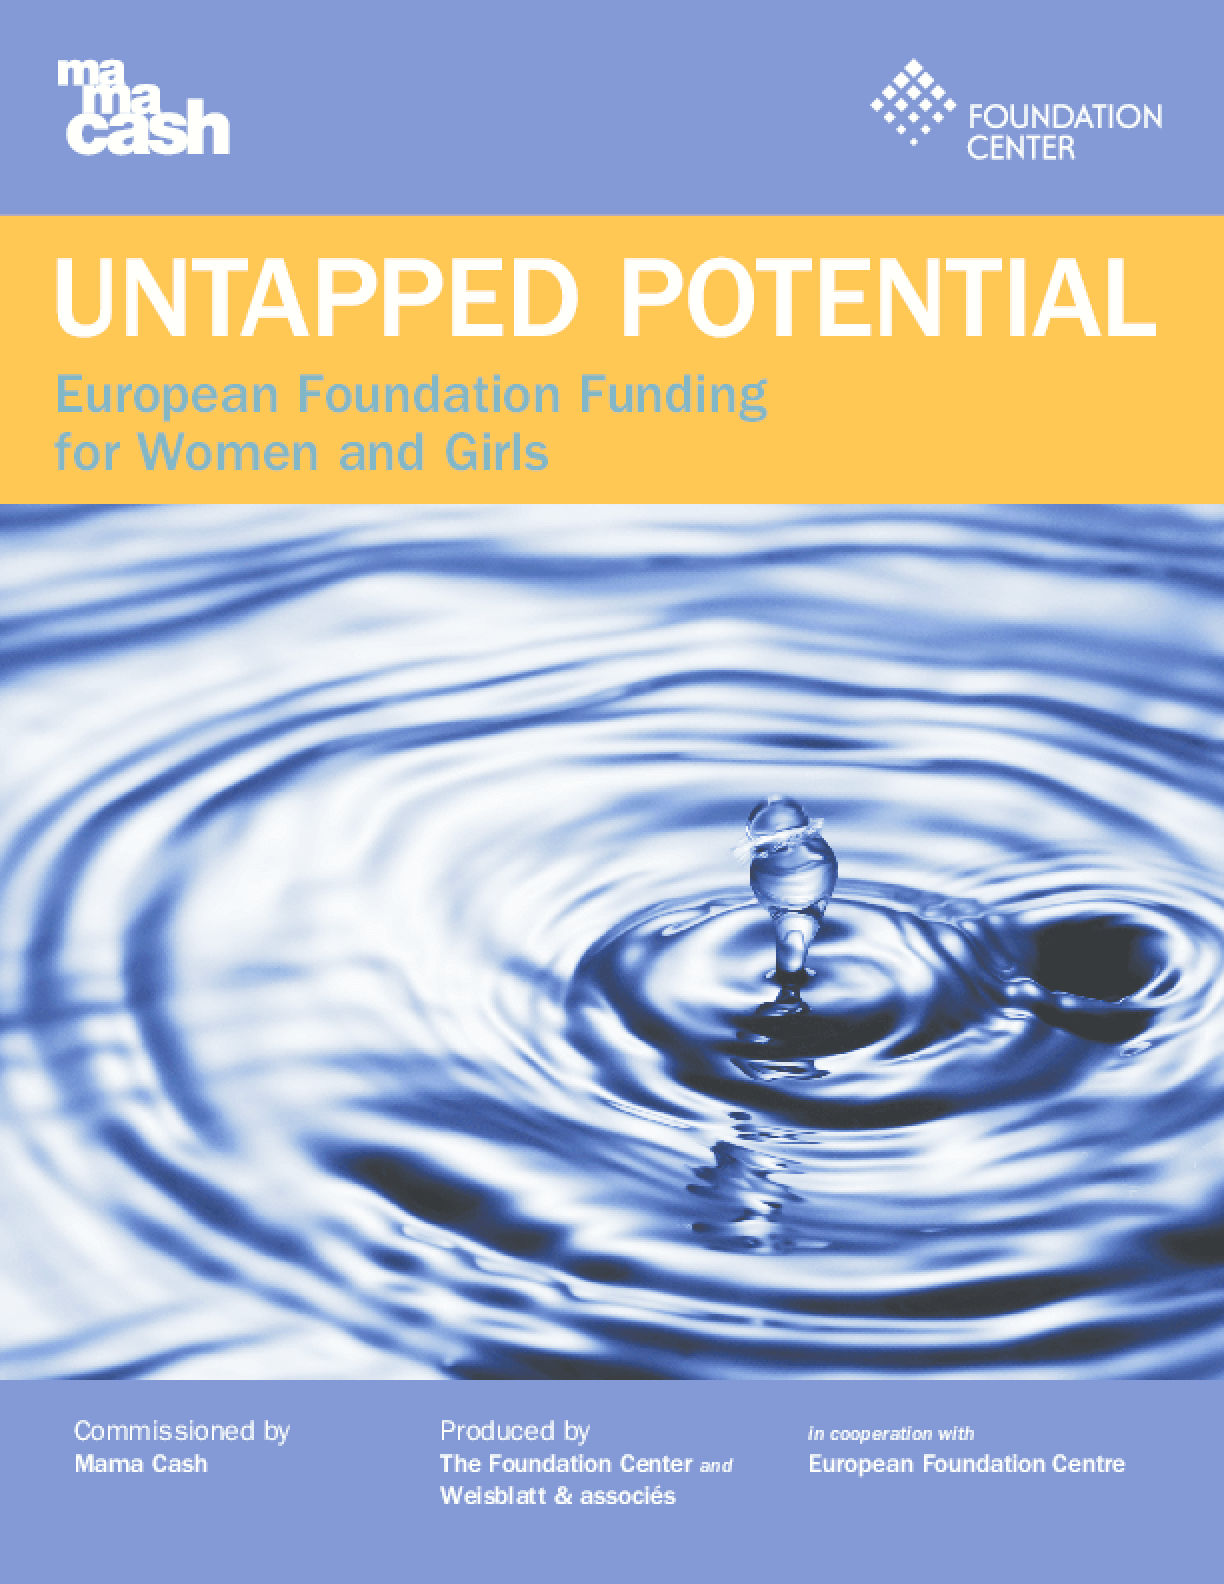 Untapped Potential: European Foundation Funding for Women and Girls